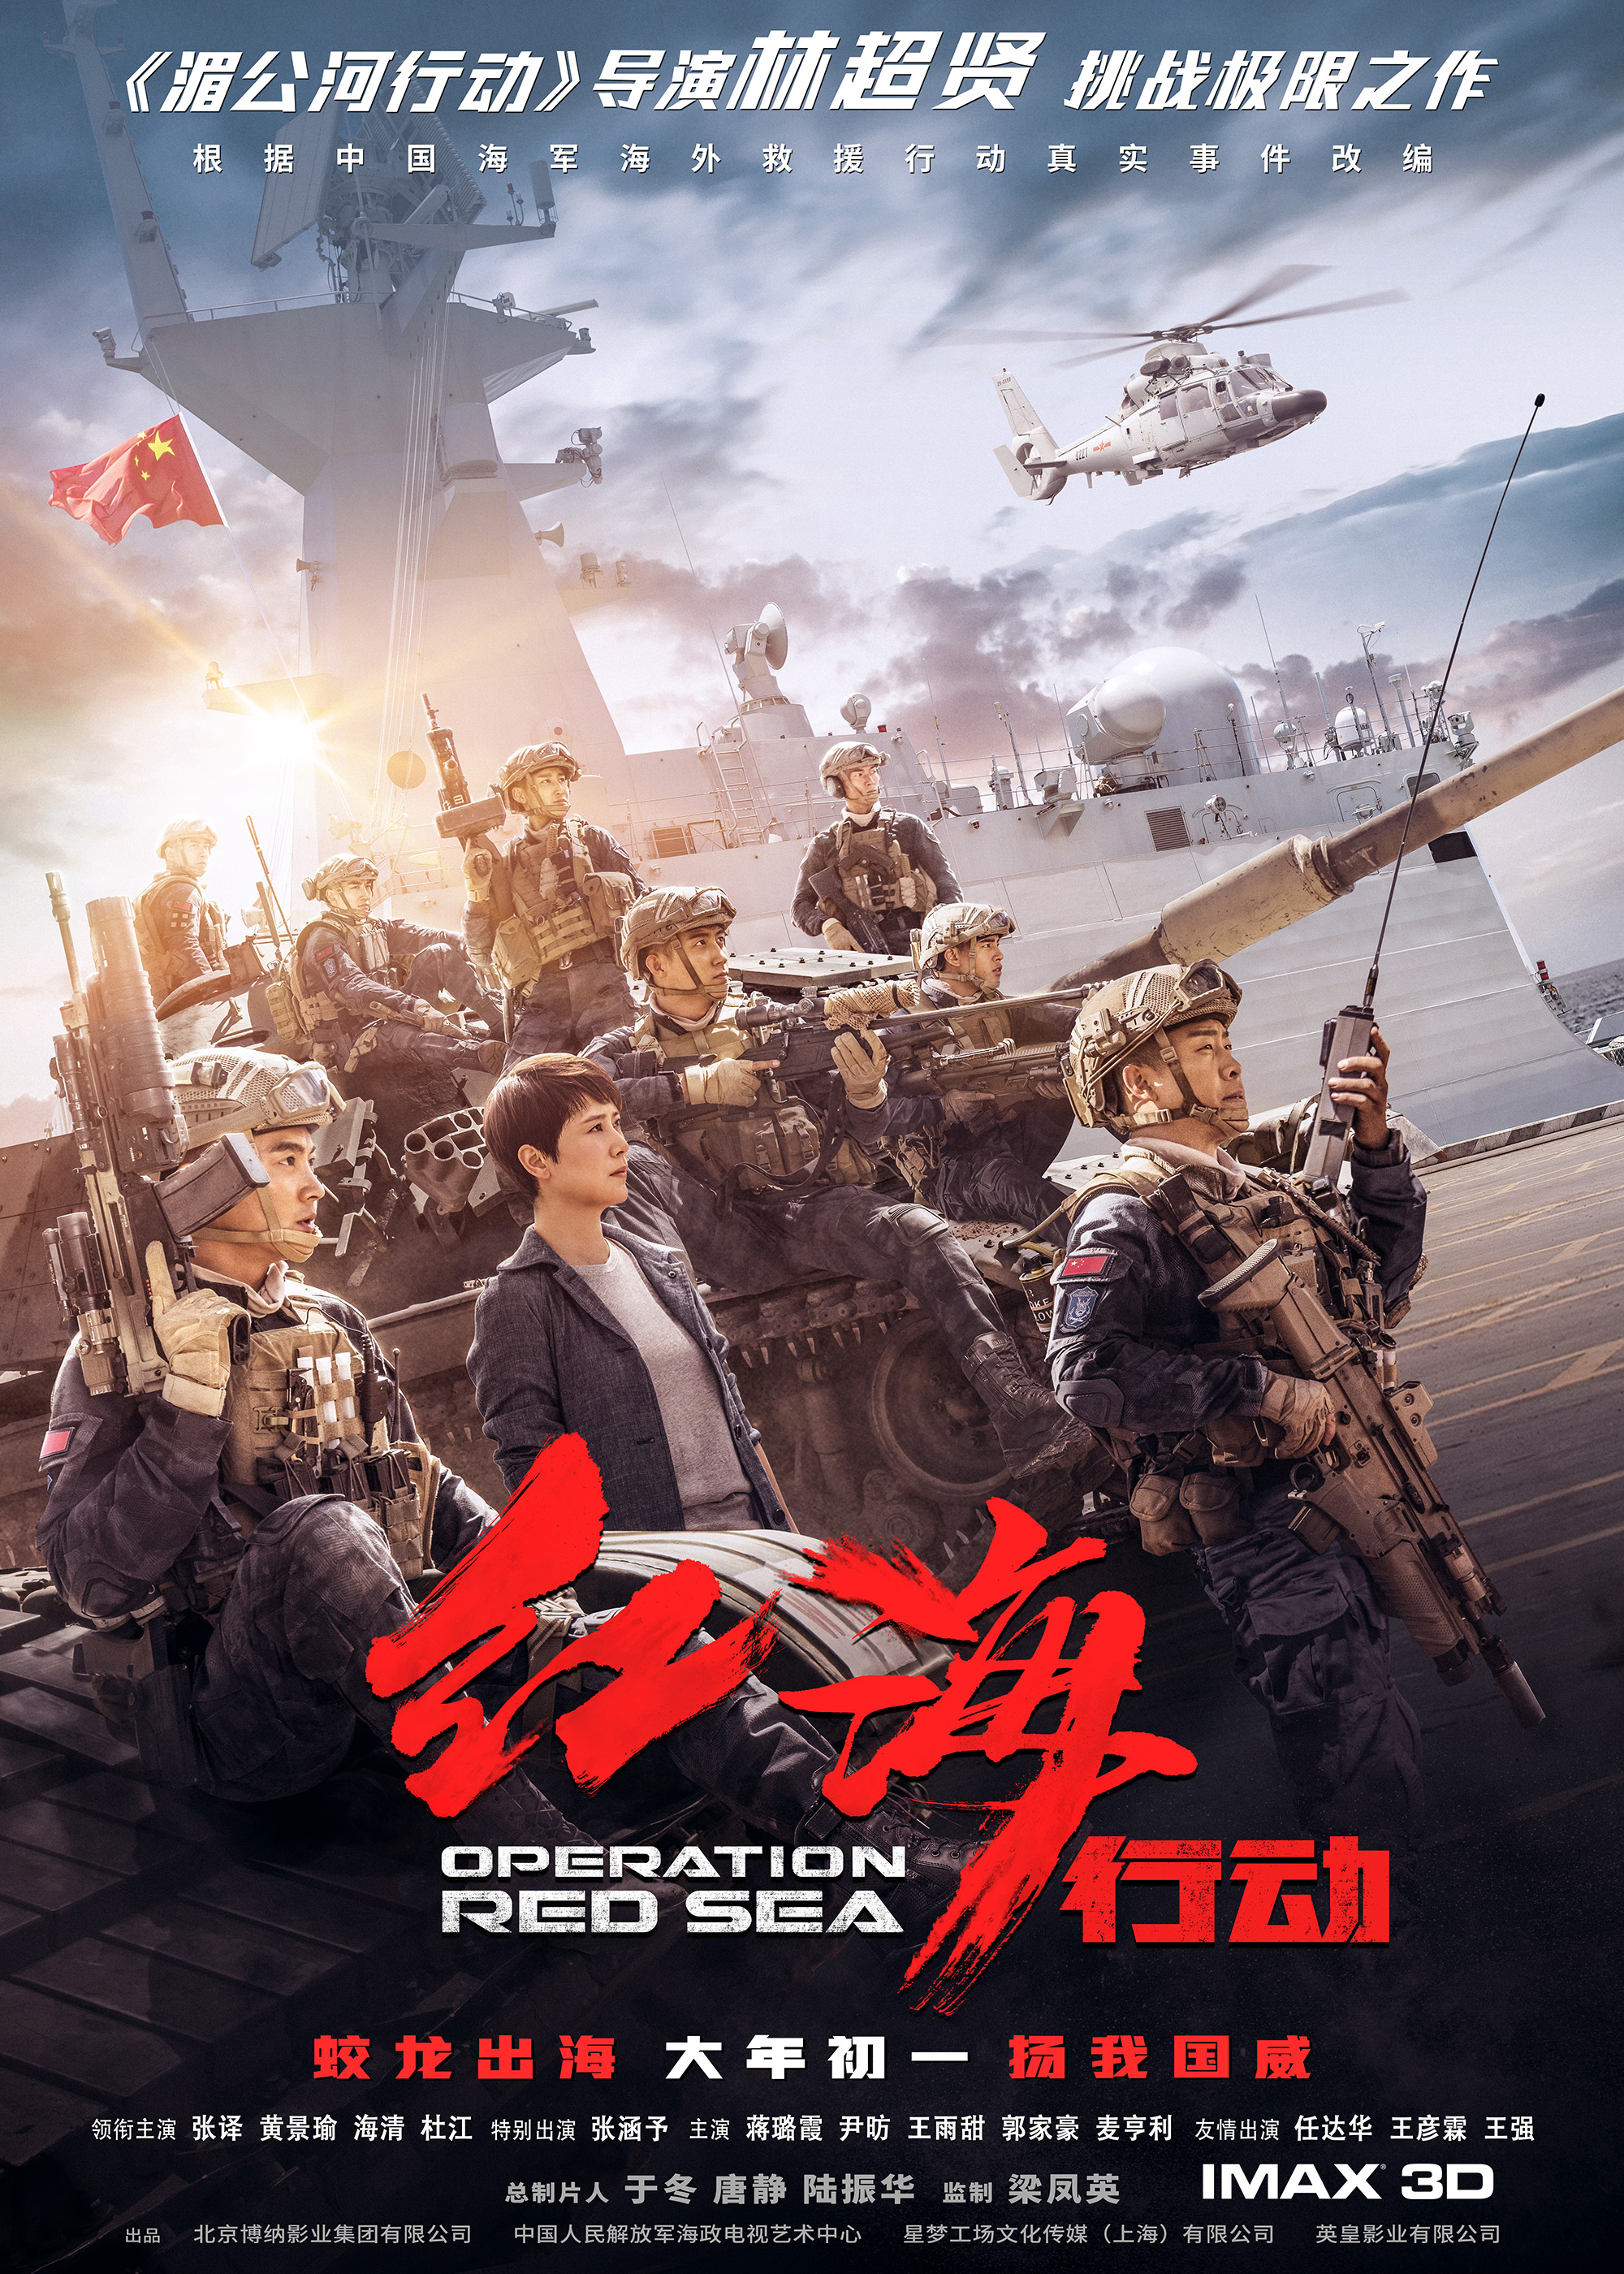 Chinese American Film Festival - Operation Red Sea